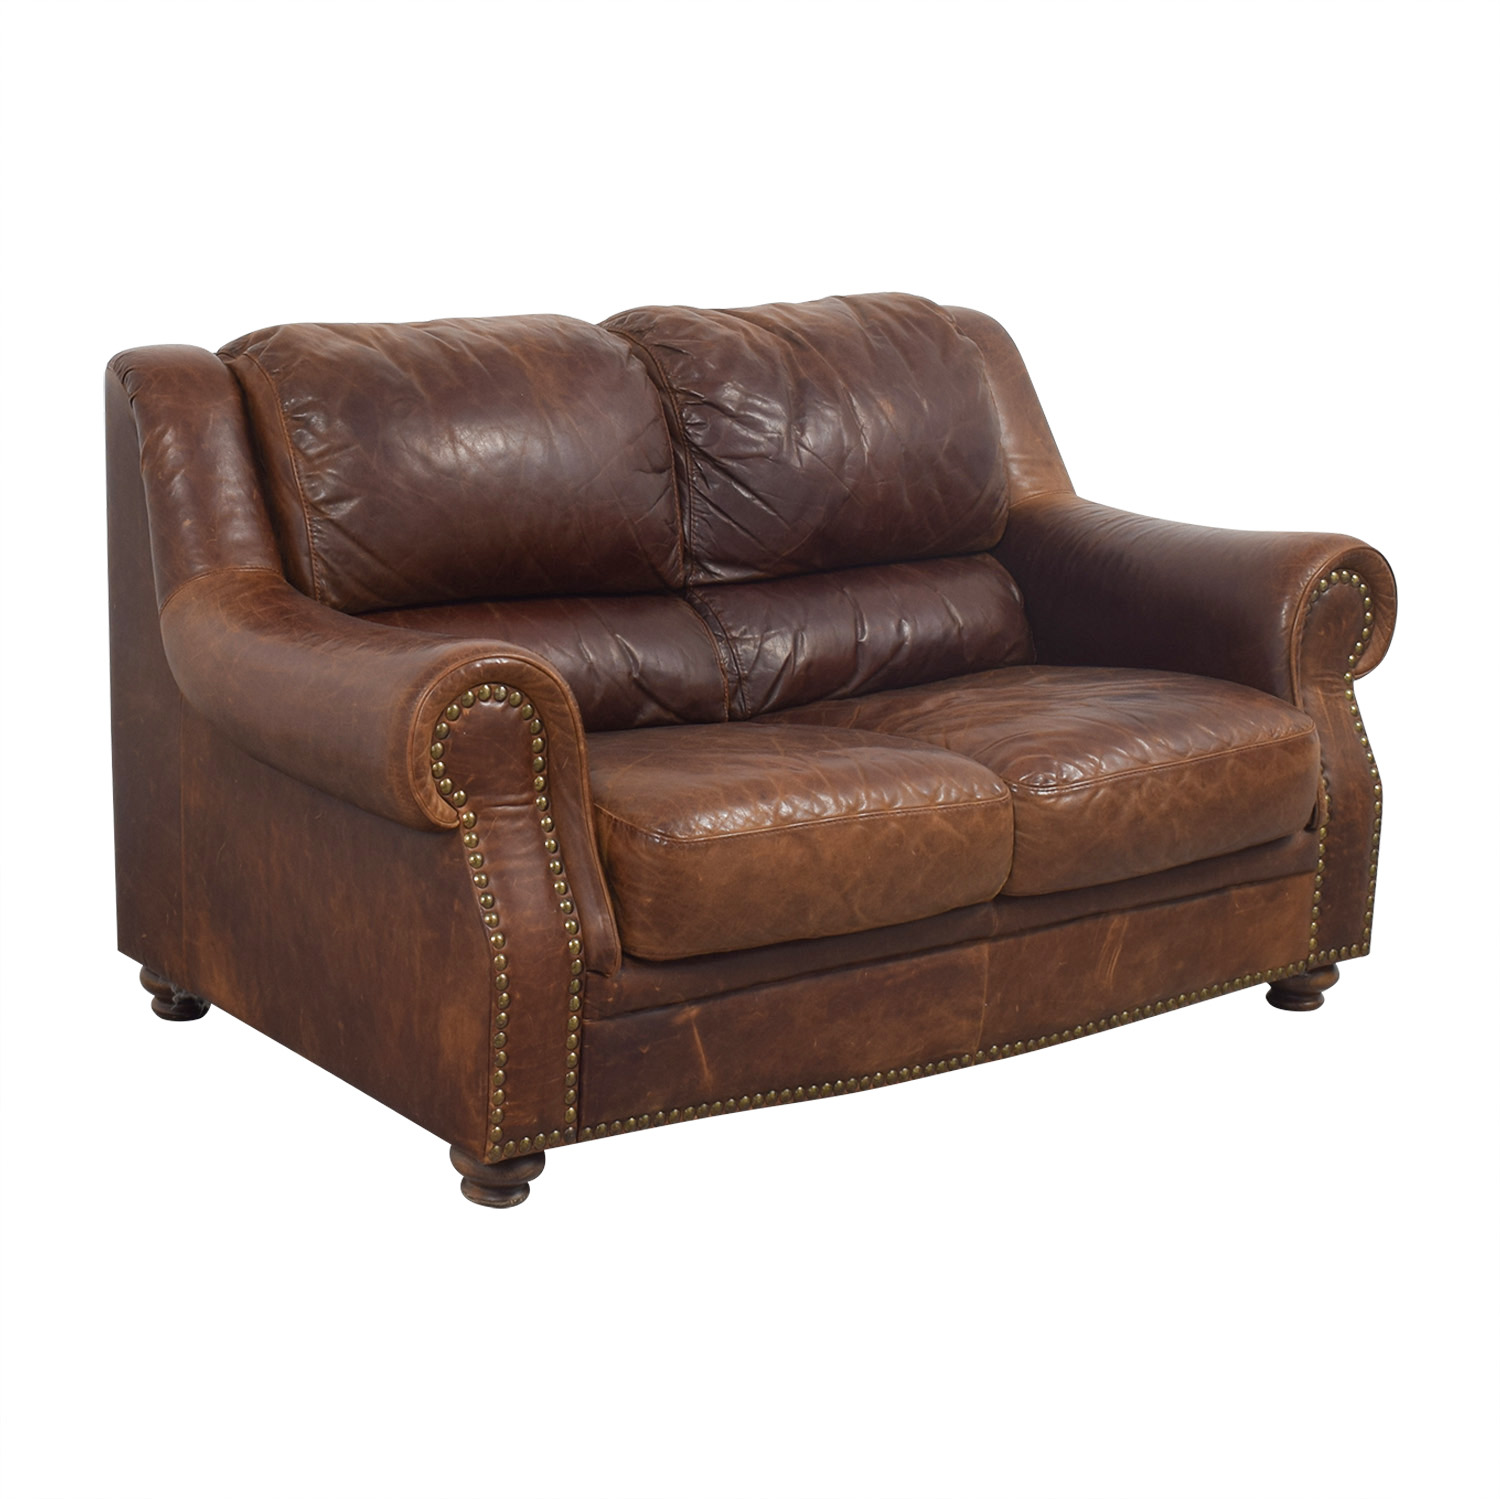 Second Hand Leather Sofas Somerset: Brown Leather Nailhead Two-Cushion Loveseat / Sofas